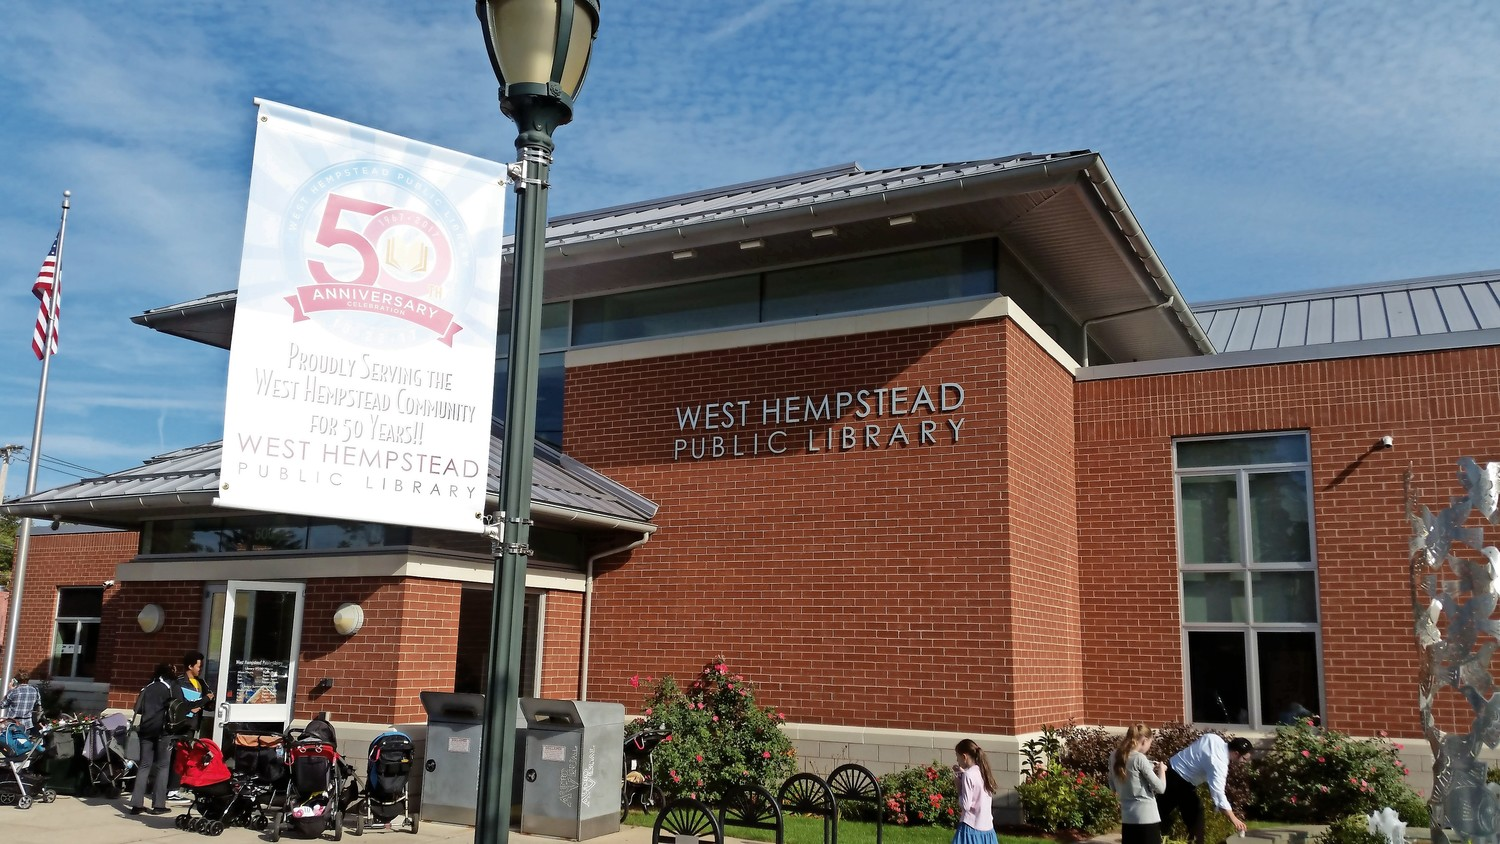 The West Hempstead Public Library celebrated its 50th anniversary last Sunday.